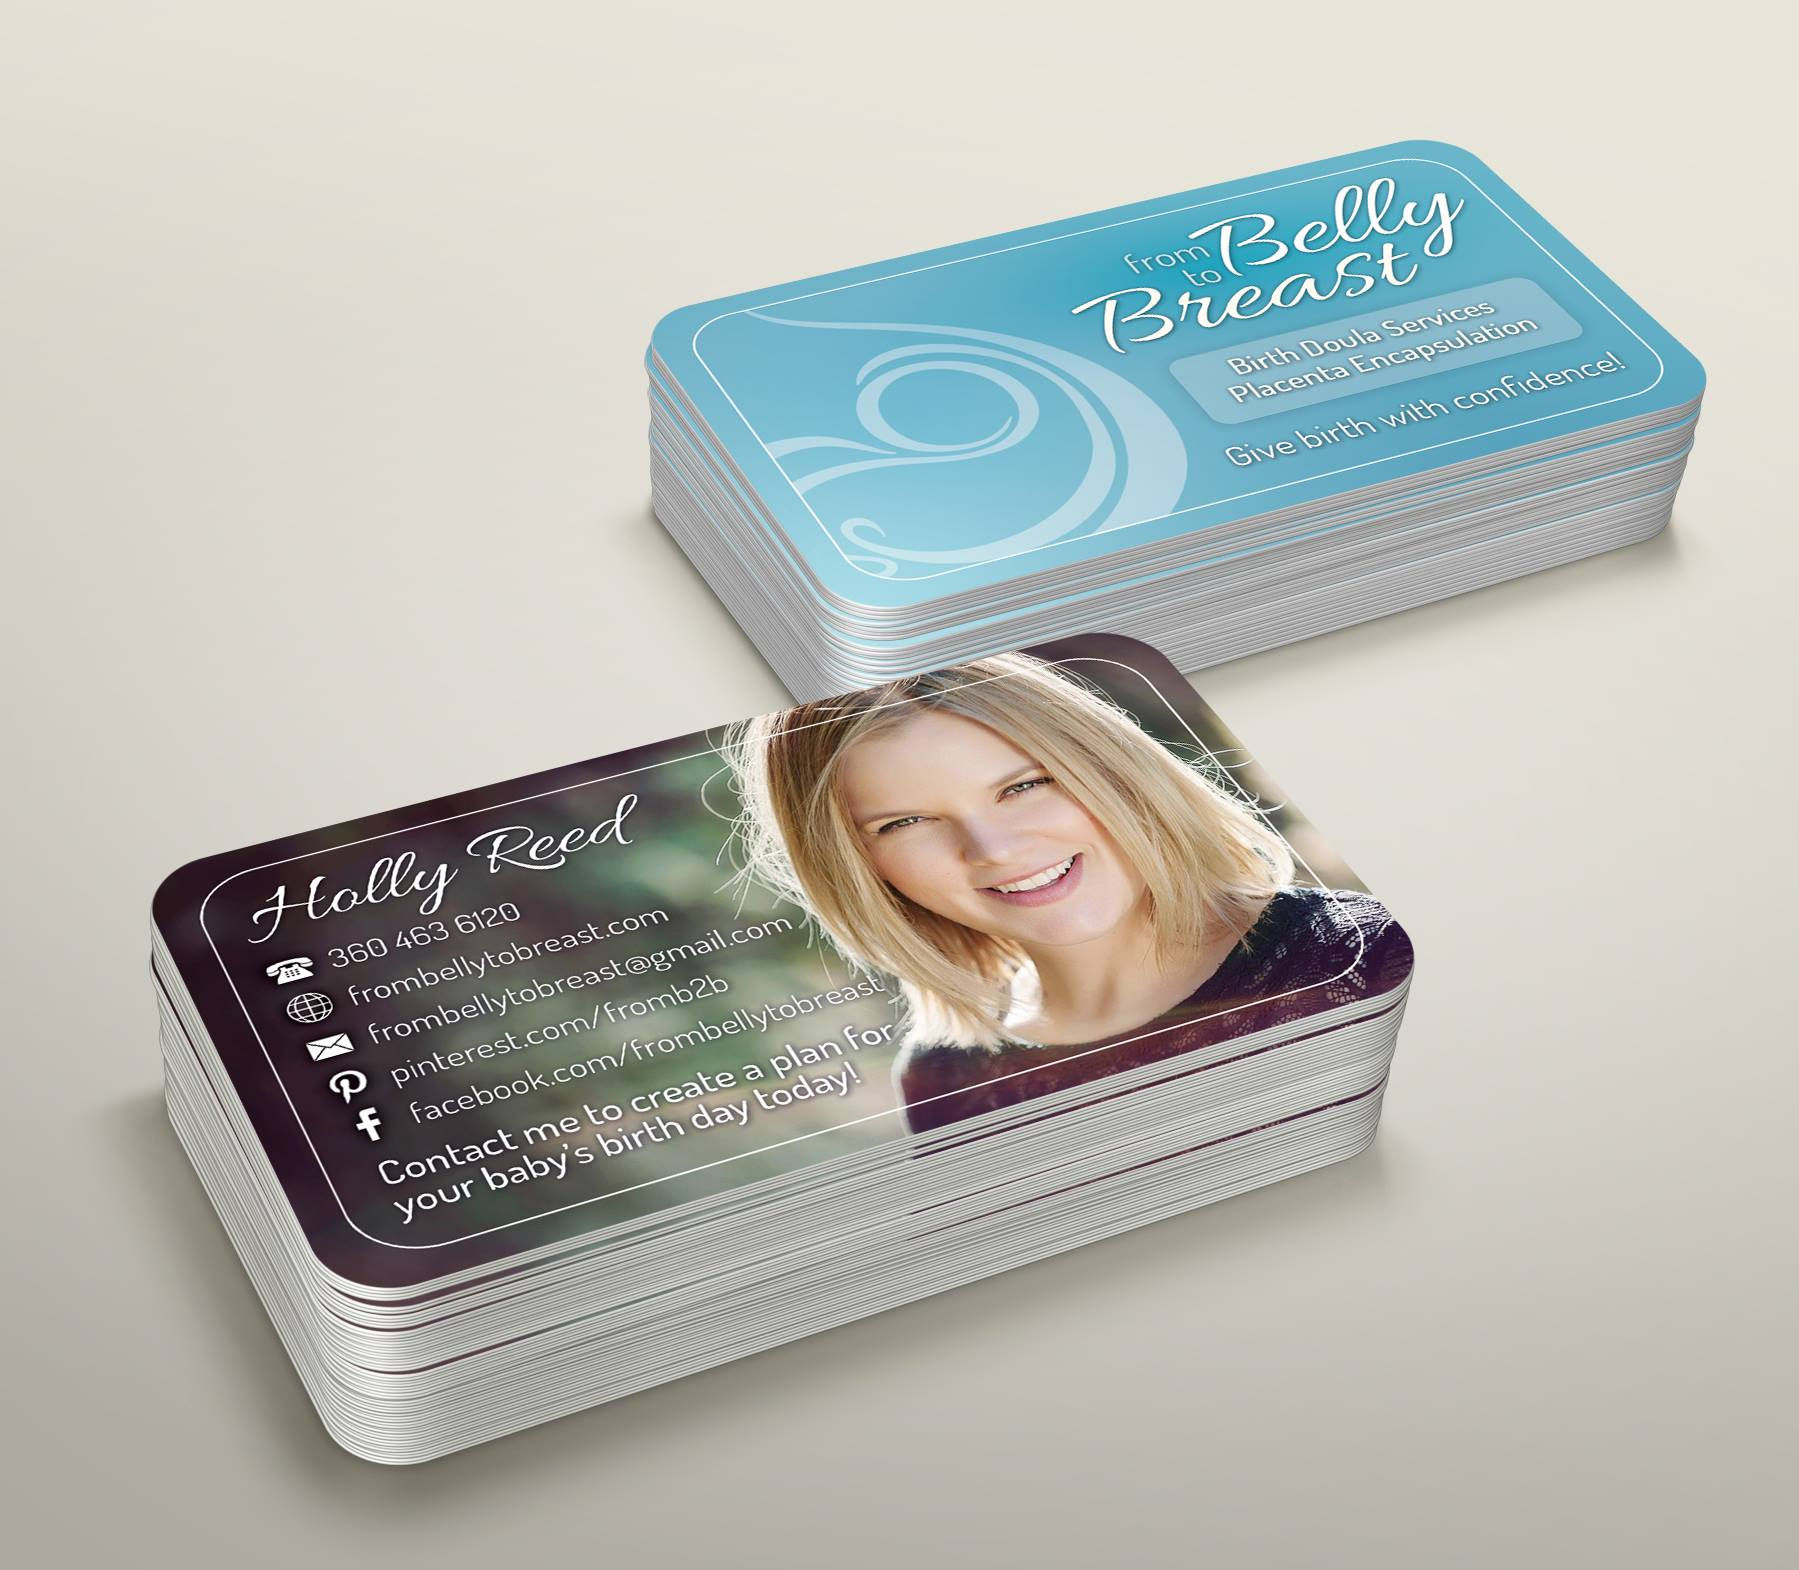 doula business card design